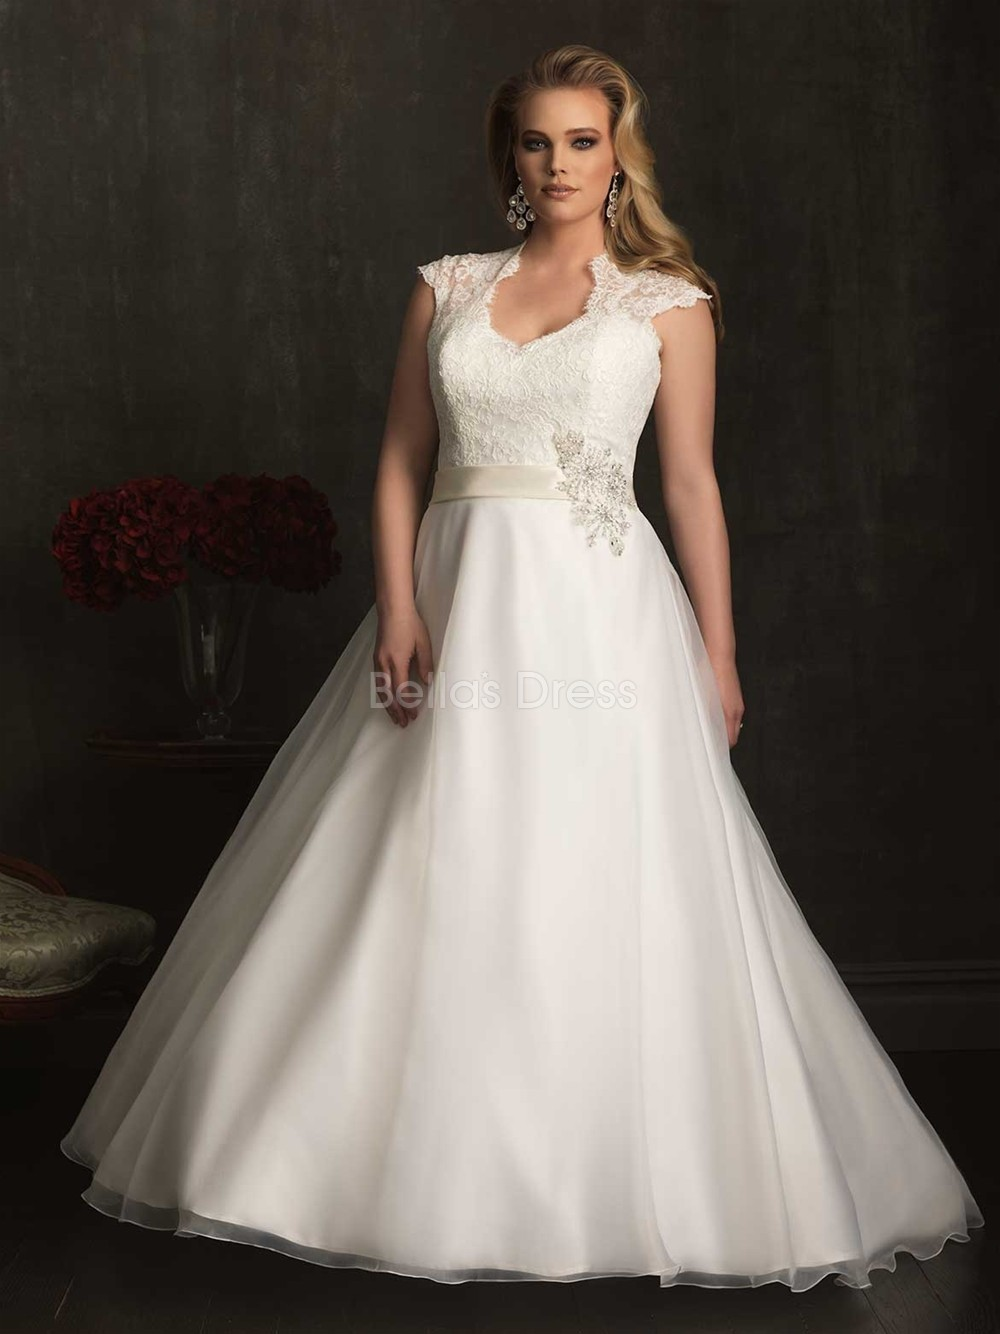 Allure Plus Size Wedding Dresses | Fashion Wallpaper